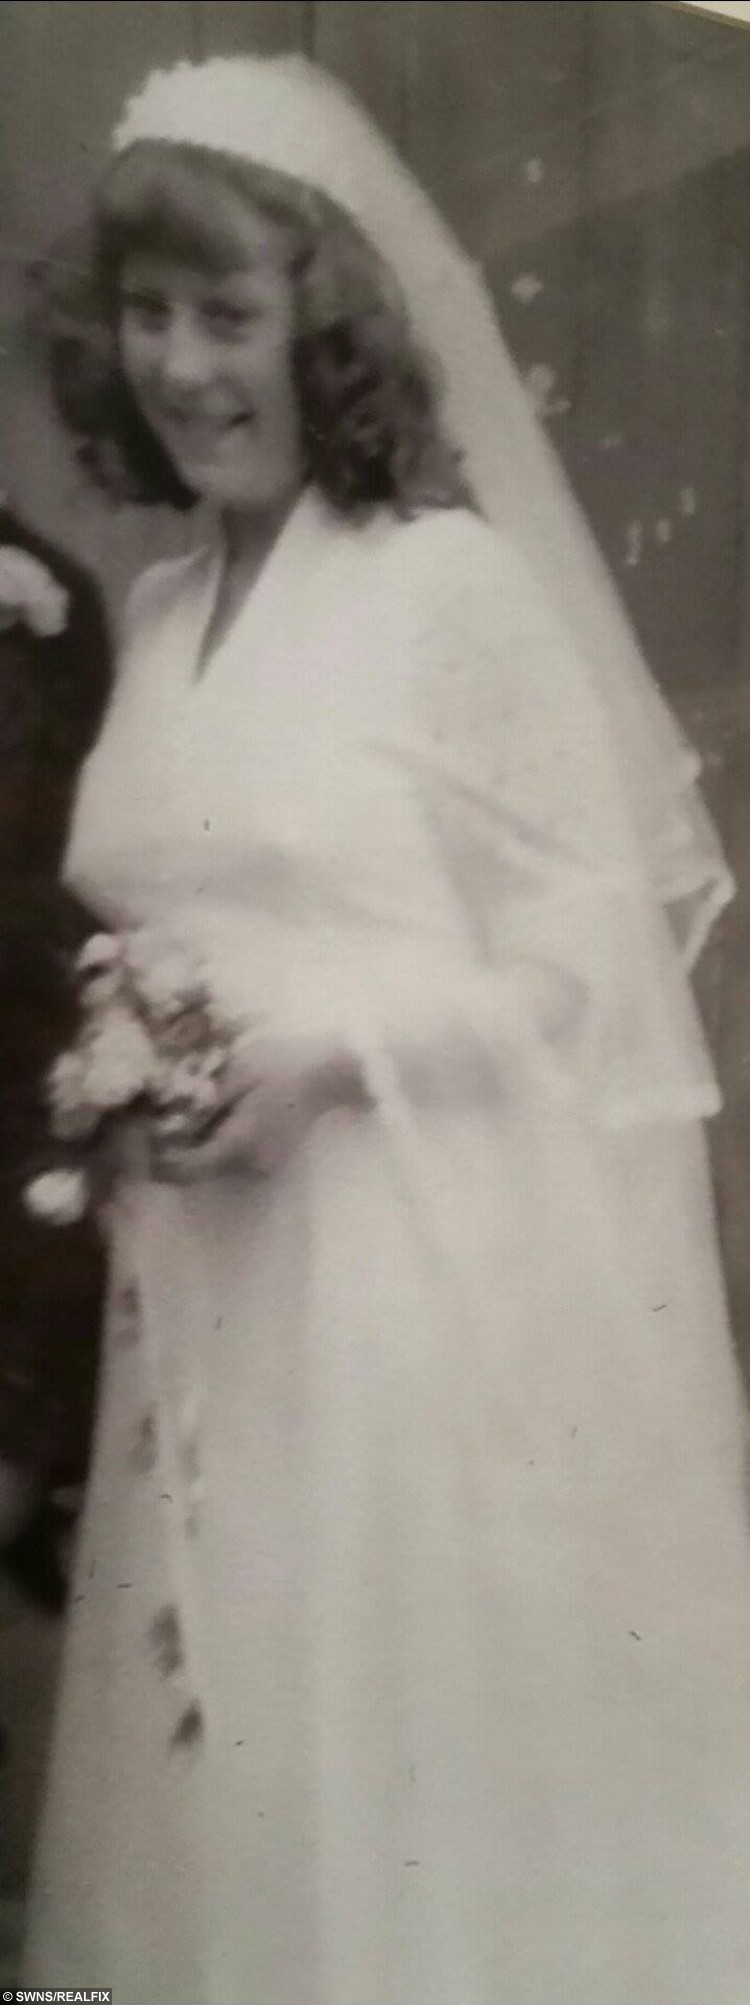 """Alison Berry from South Shields, Tyne and Wear, who has lost 10 stone with the help of Slimming World and is able to fit in her wegging dress from 38 years ago. Alison Berry on her wedding day, June 24, 1978. See Ross Parry copy RPYBRIDE : A super slimmer is celebrating after losing HALF her body weight - meaning she's able to slip back into the wedding dress she wore 38 years ago. Alison Berry, 56, had ballooned to 22st 1.5lbs after years of yo-yo dieting, leaving her wearing a dress size 30 to 32. But after going on a 10-stone super slimming spree, she slimmed down to 12st 1lb as is now even able to squeeze into the wedding dress she wore in 1978 as a fresh-face 18-year-old. The mum-of-three, from Hebburn, Tyne & Wear, said: """"I found my dress in a box the other day and just thought I would try it on and I just couldn't believe it when it fit.  """"I was quite emotional about it. It was a week before my 19th birthday when I got married so to think I'm back to the size I was then is amazing."""